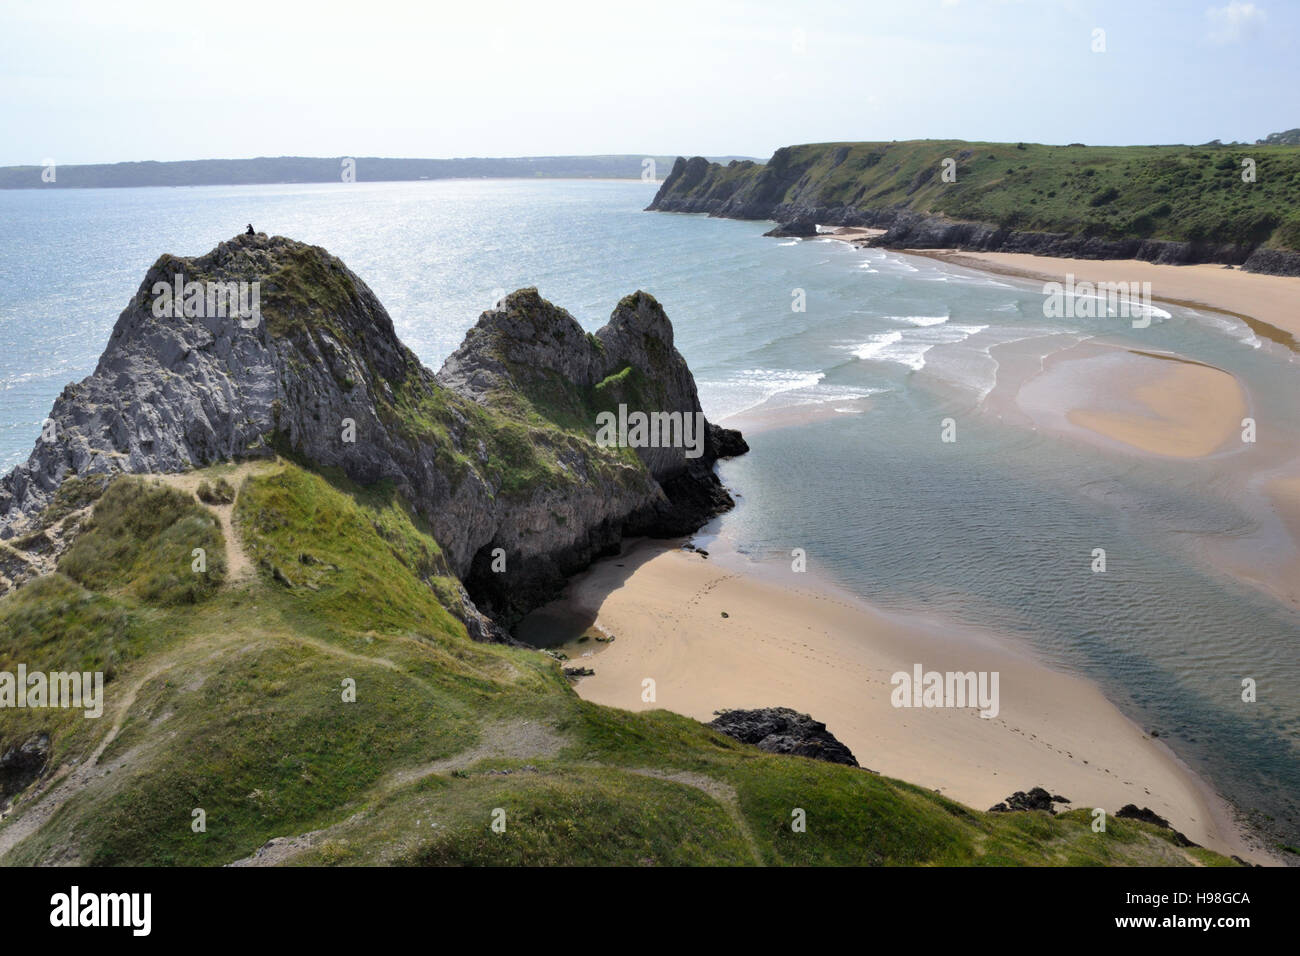 Three Cliffs Bay and beach on Gower Peninsular in Wales Stock Photo